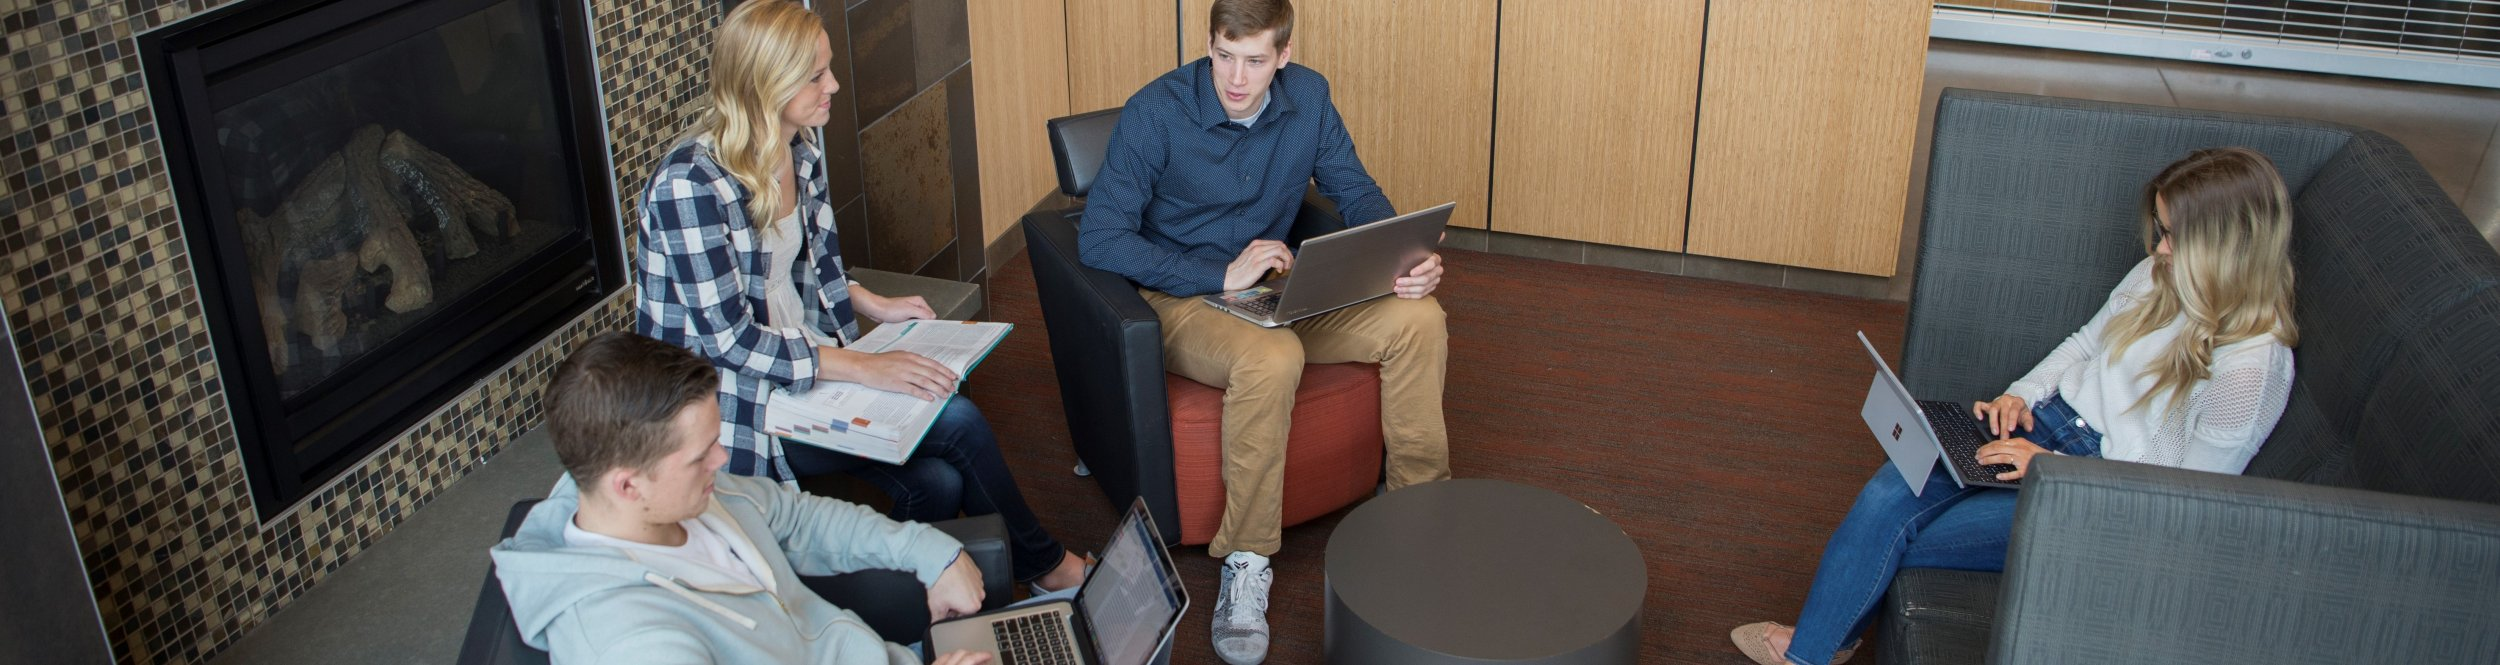 A group of students sit in a lounge area with their laptops.